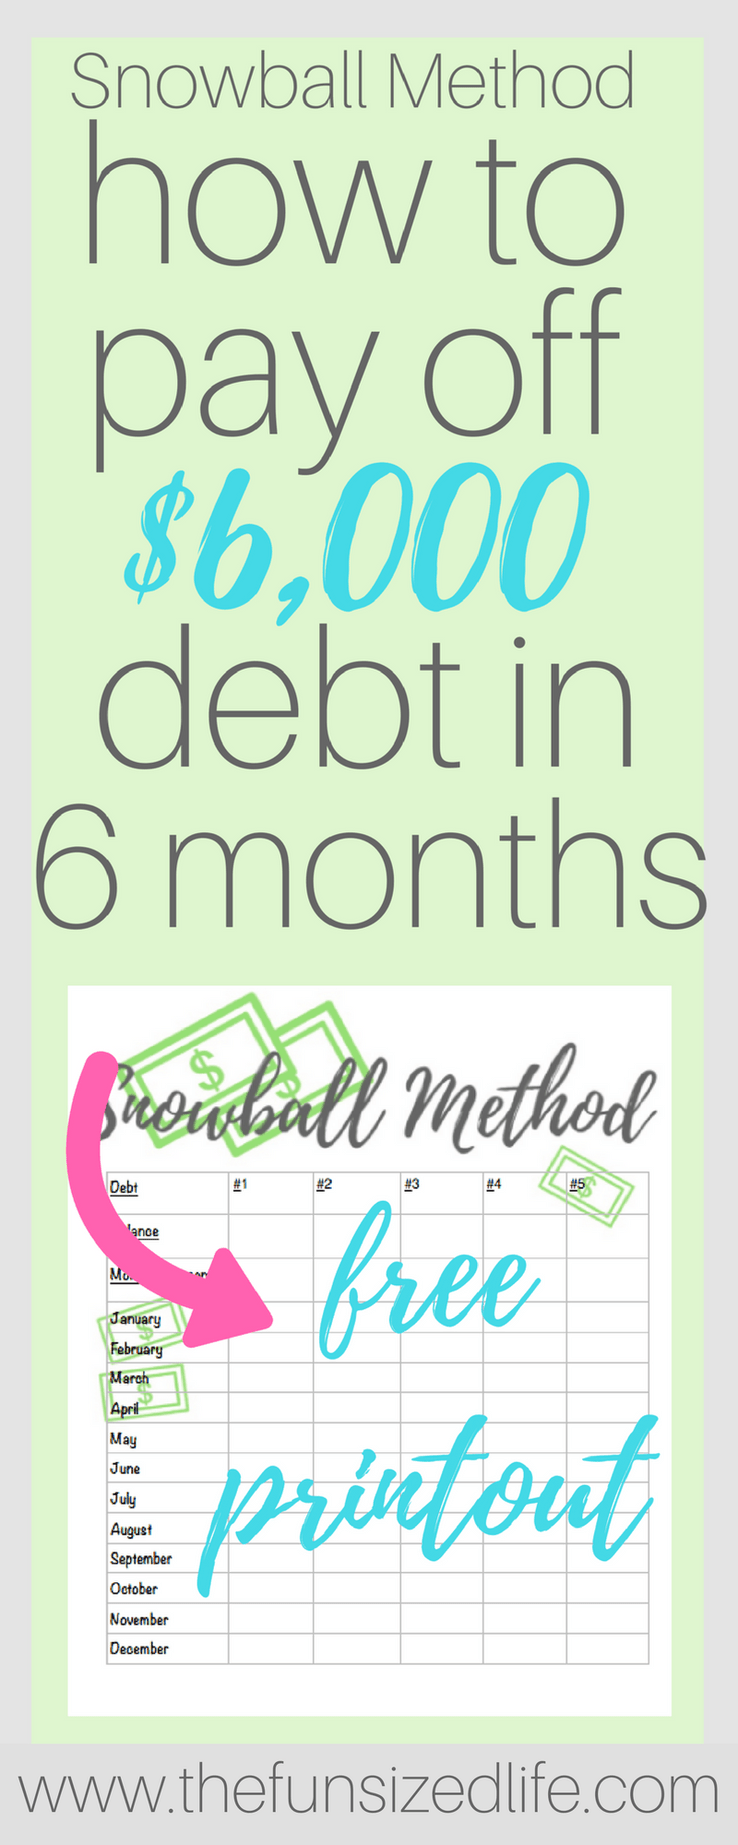 Debt Snowball Helped Us Pay Off 6 000 Of Debt In 6 Months Paying Off Credit Cards Budgeting Money Money Management